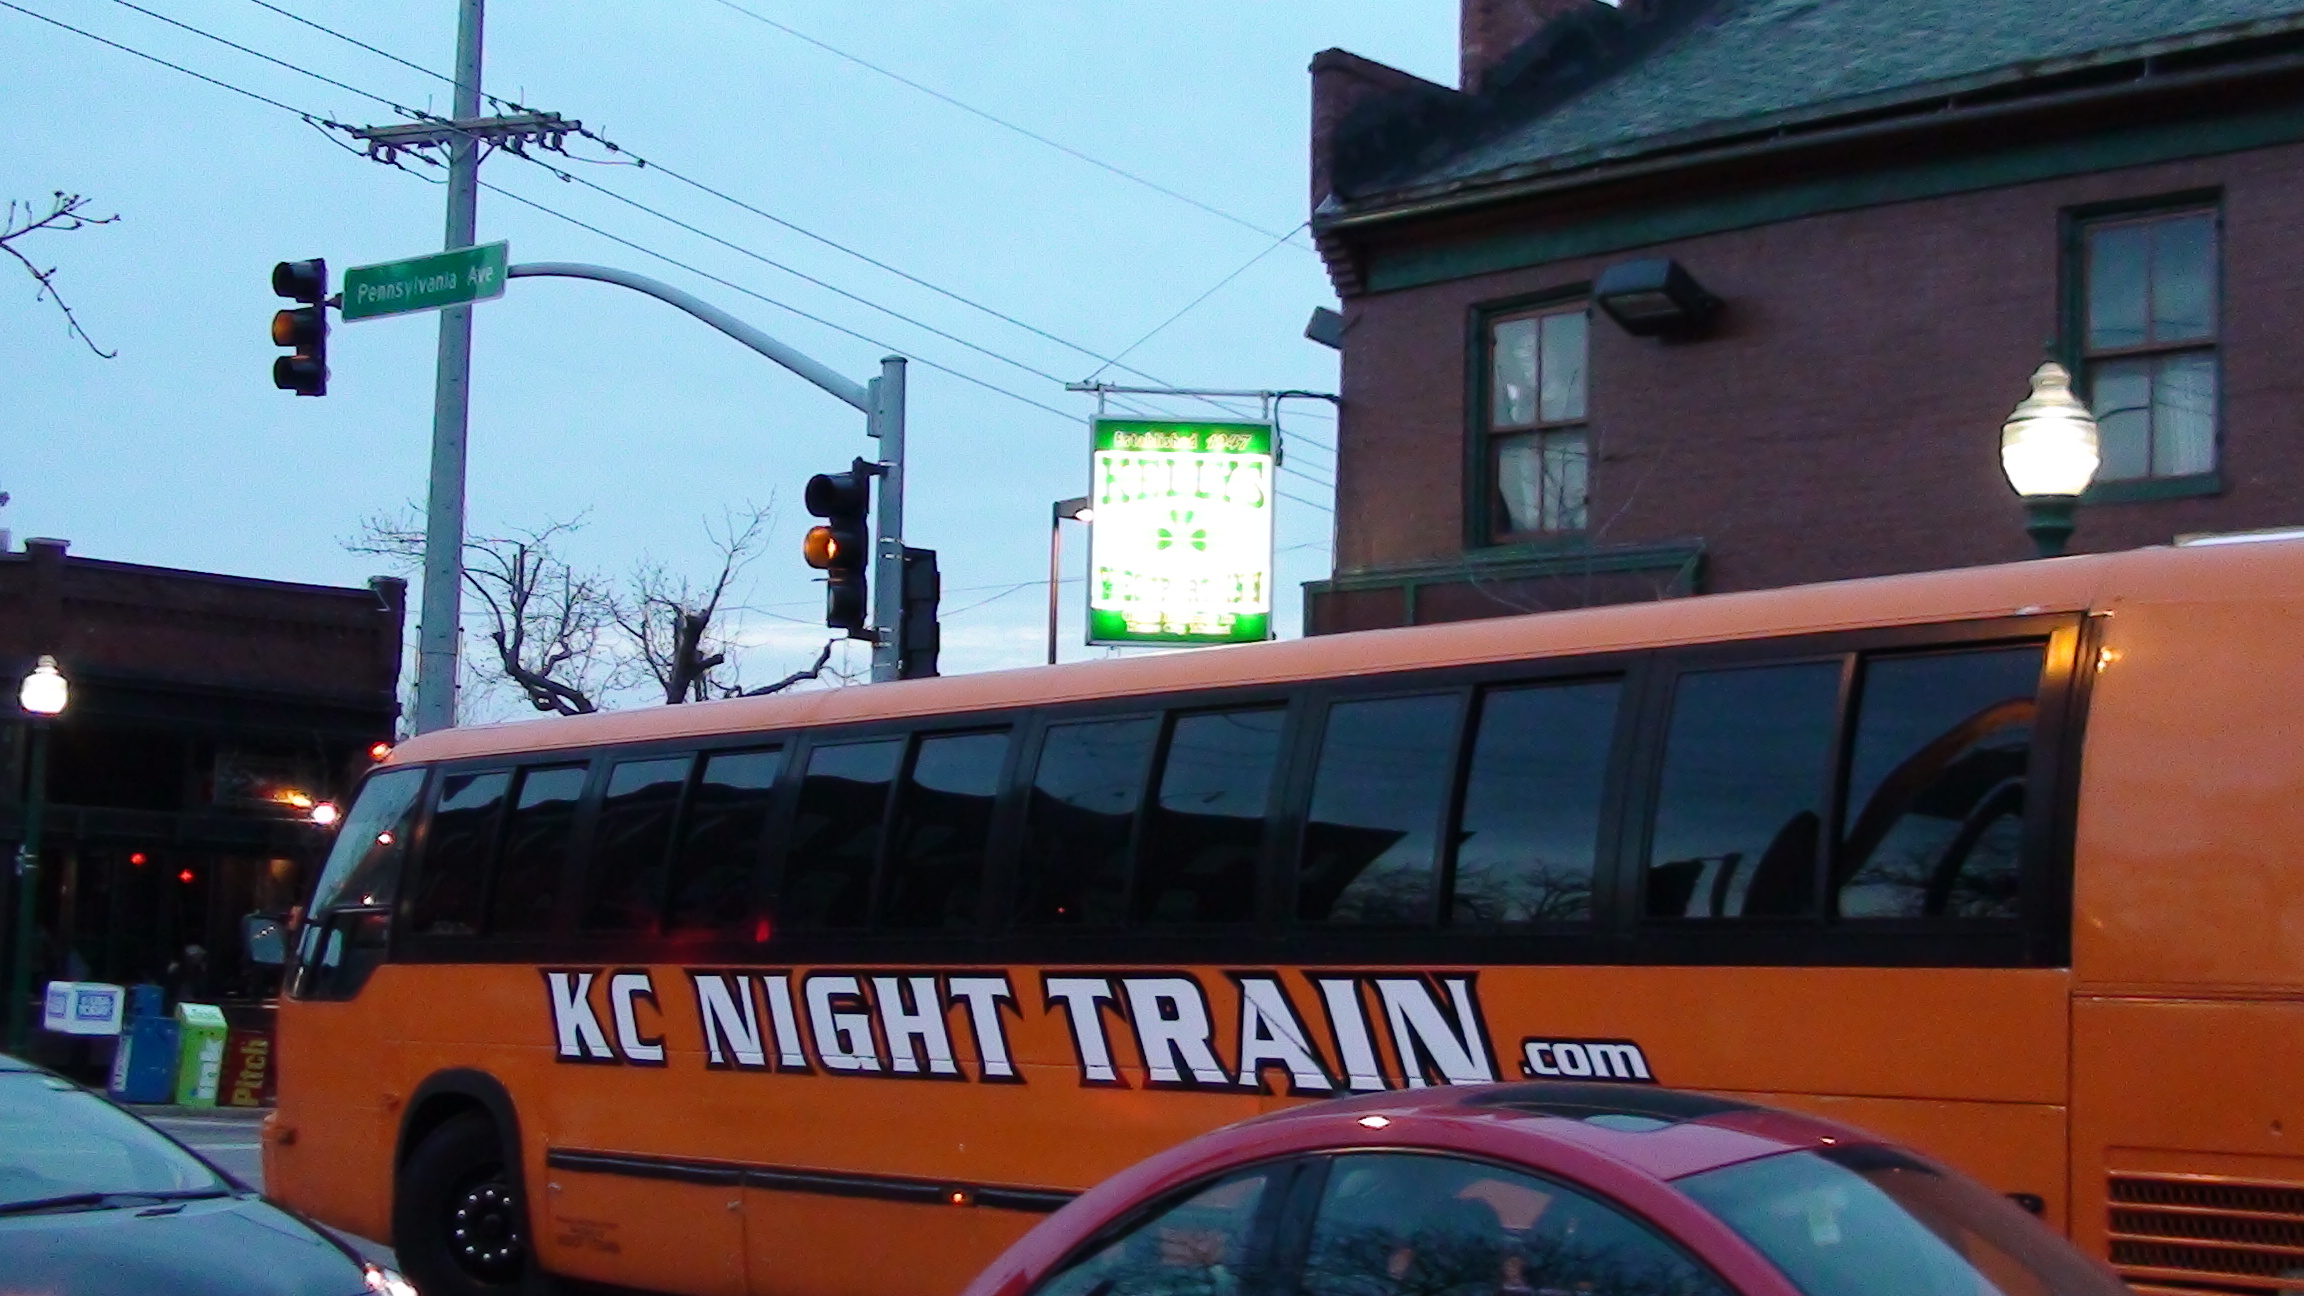 kansas-city-night-train-orange-party-bus-kelly